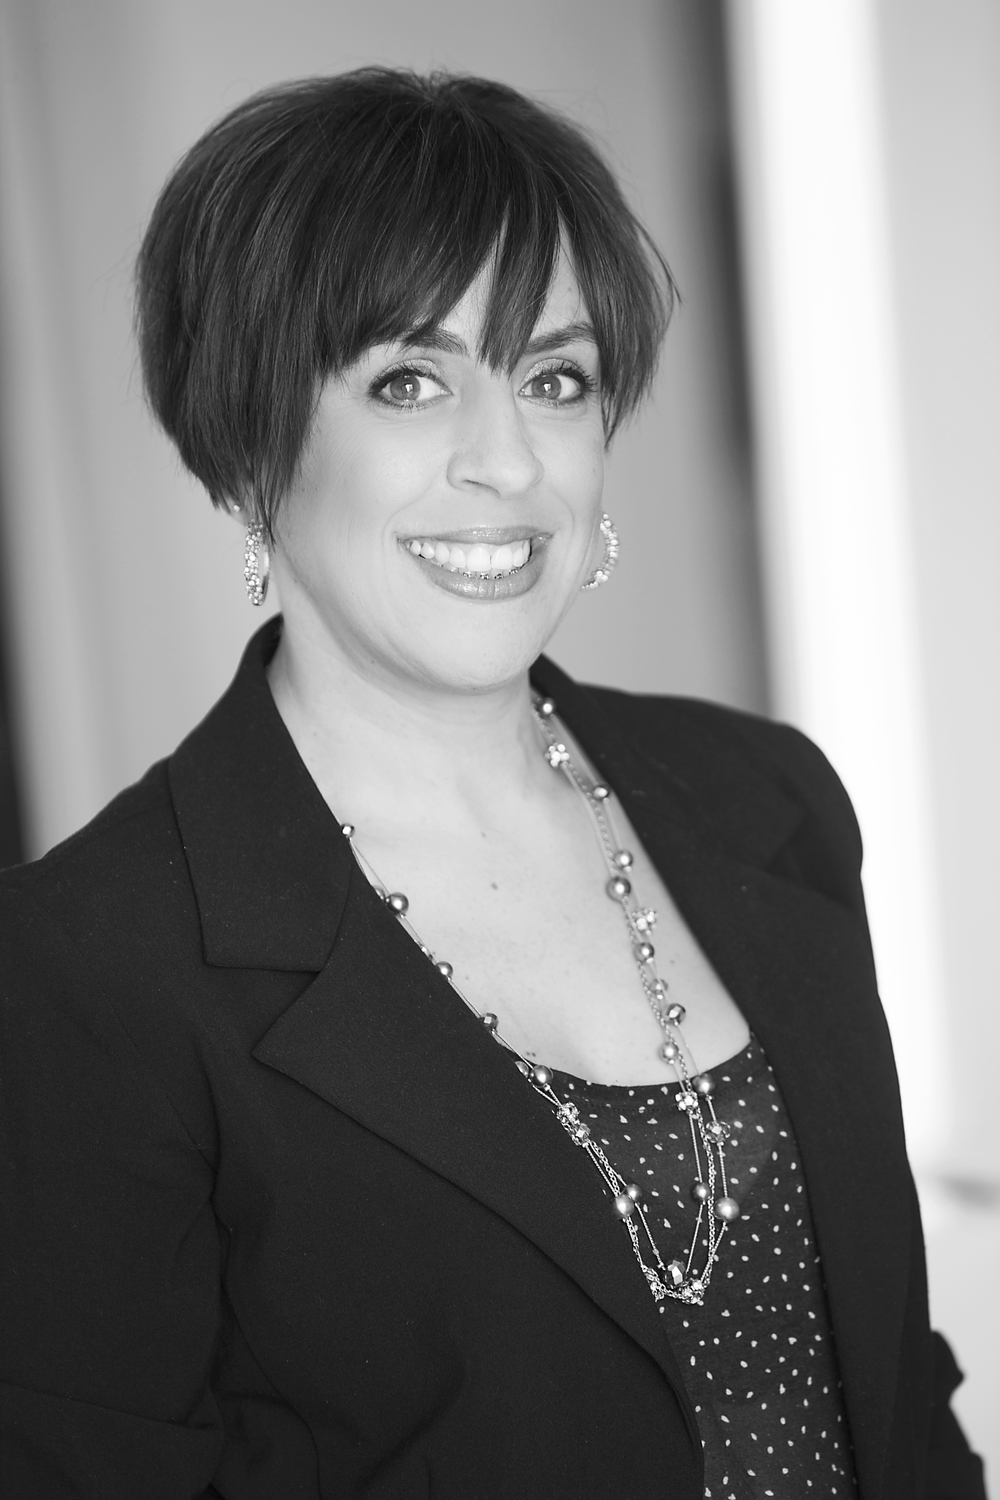 dina, stylist Dina joined the Storm team in 1999. With a thirst for knowledge, Dina has attended some of the top education events in Canada and the United States. She takes pride ineducating guests in how to achieve a salon look at home. Dina also shows a true affection for her guests with an enjoyable andmemorable salon experience.